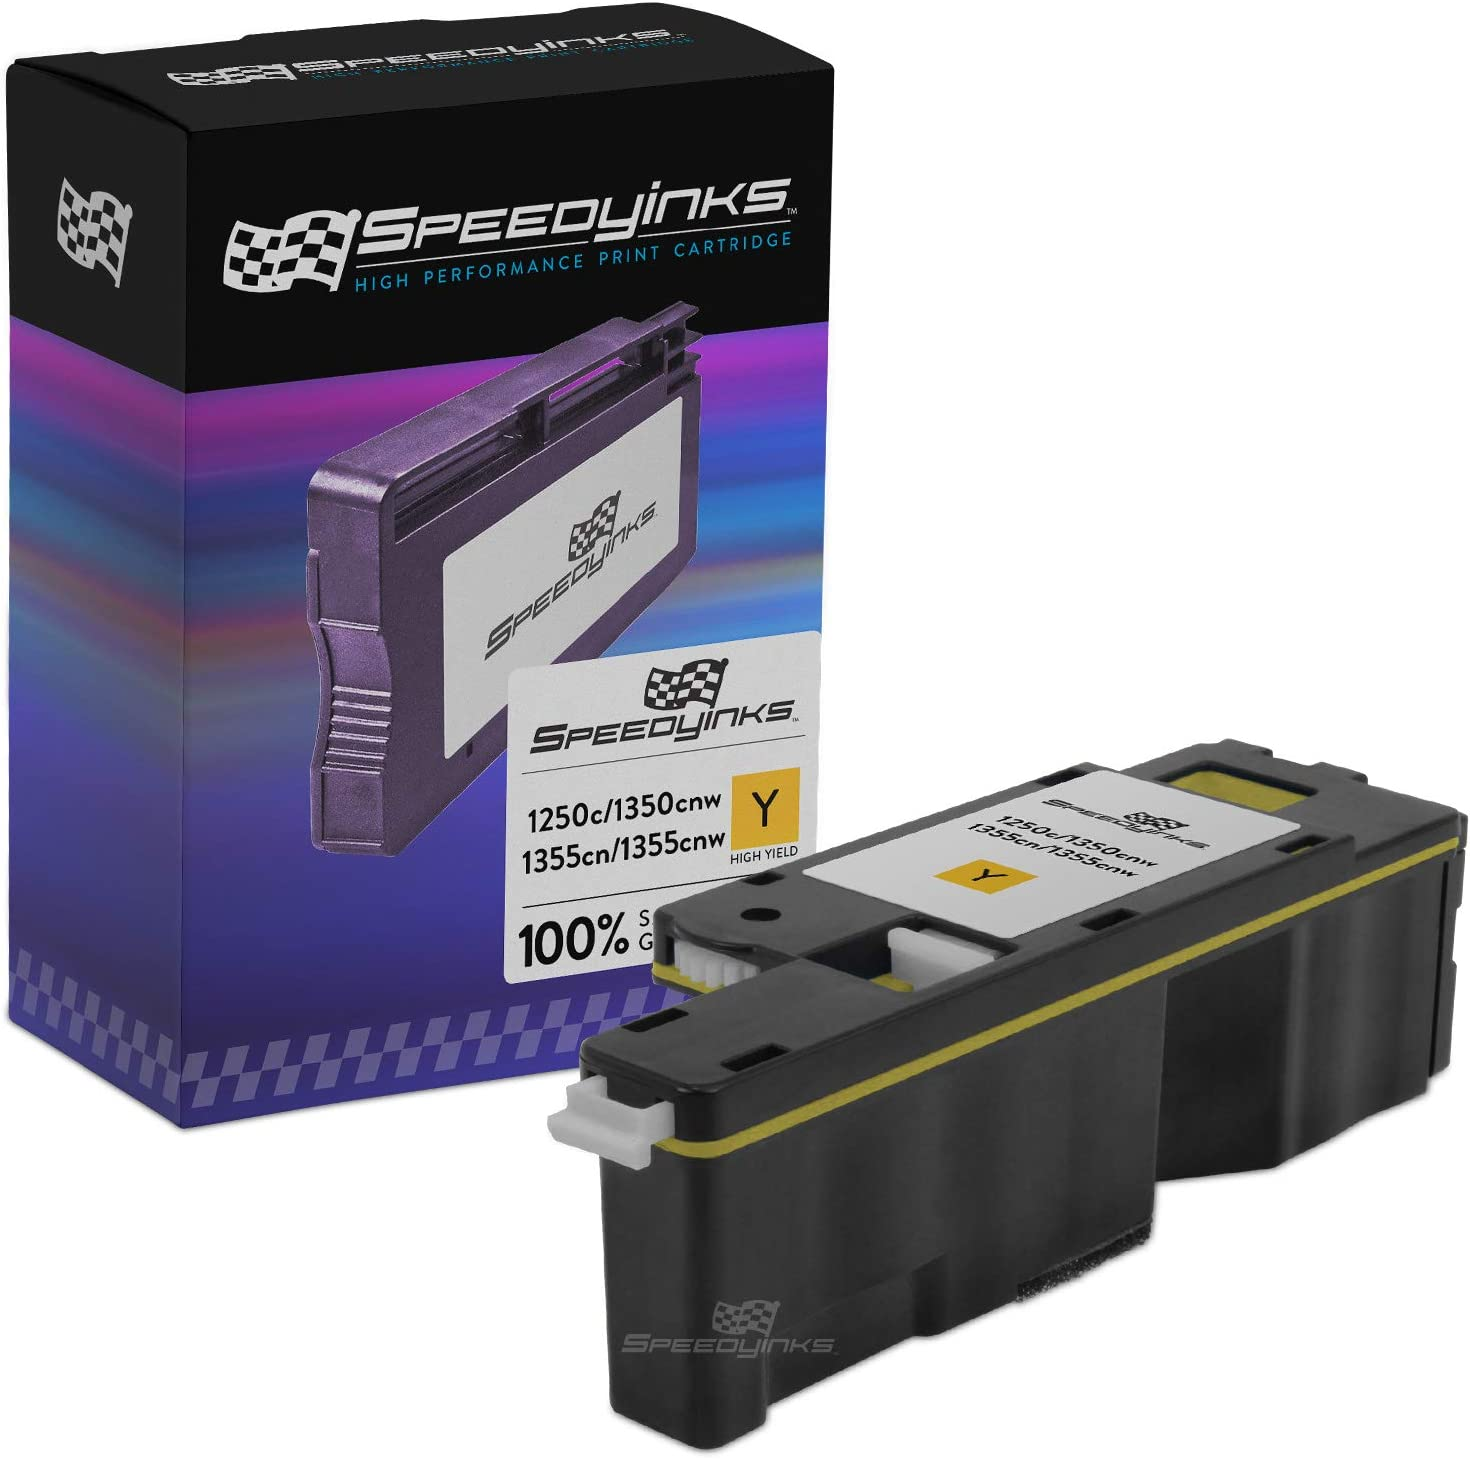 Speedy Inks Compatible Toner Cartridge Replacement for Dell 1250 | DG1TR (Yellow)